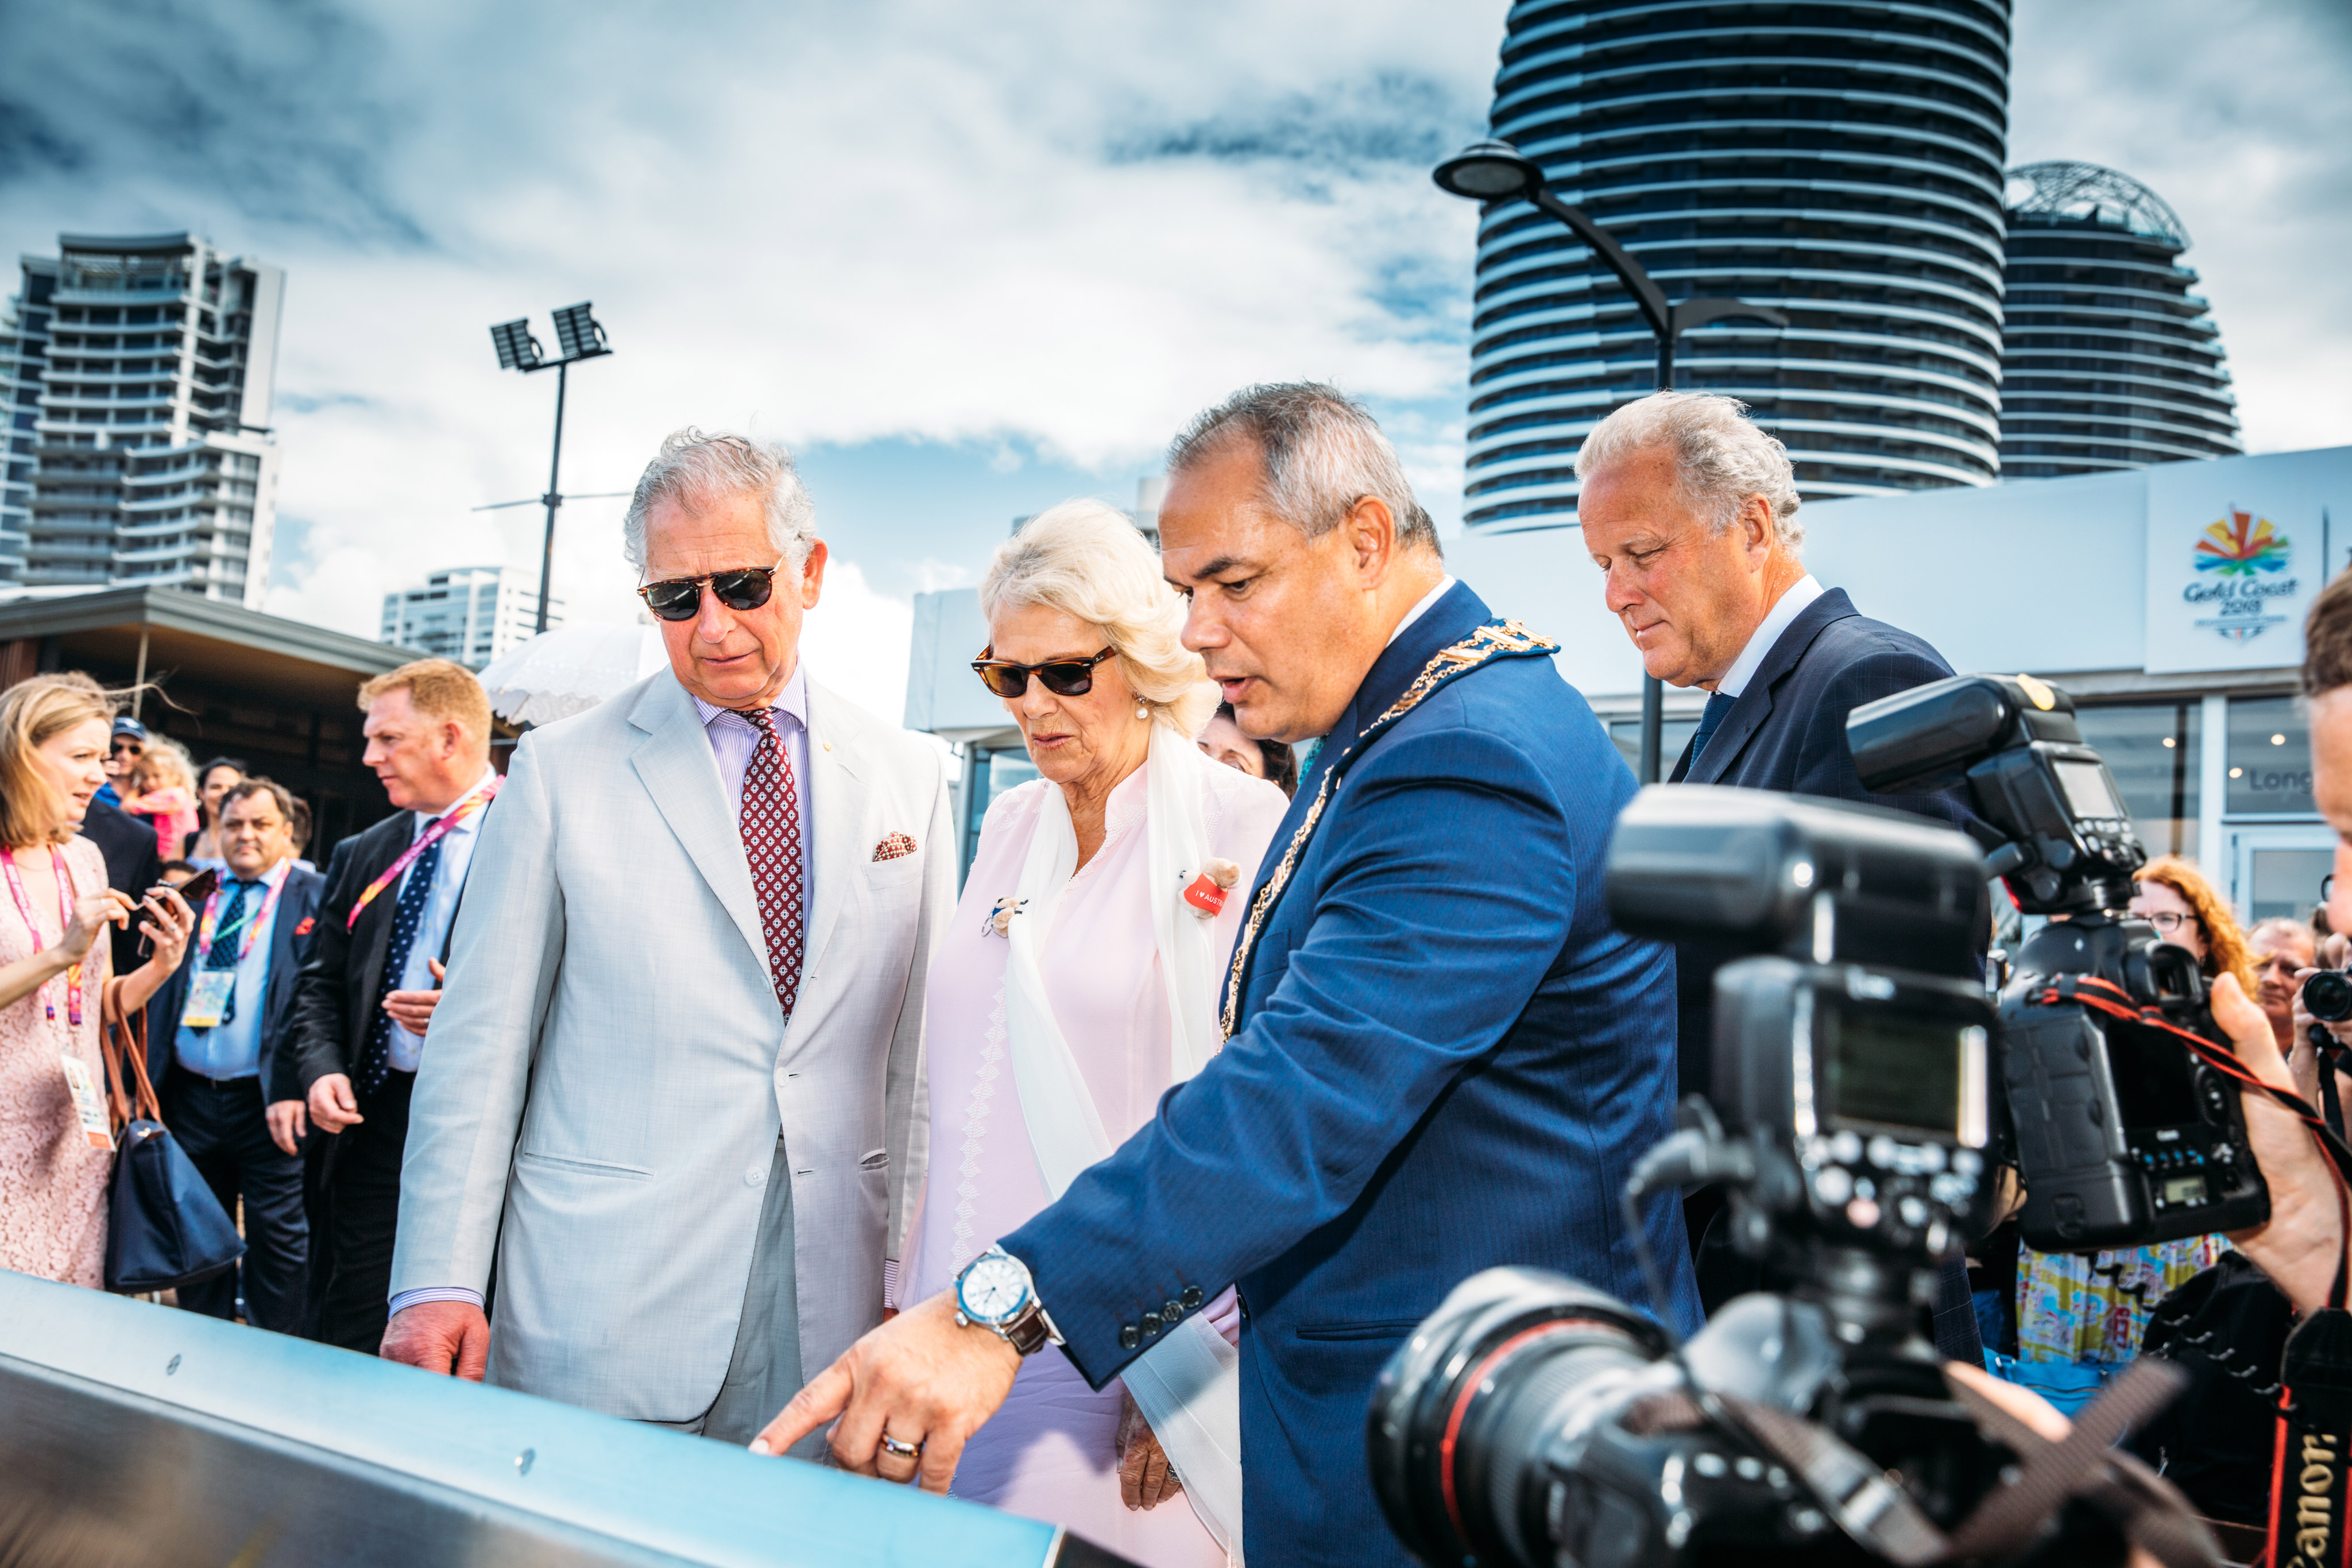 HRH The Prince of Wales launches Gold Coast Commonwealth Walkway